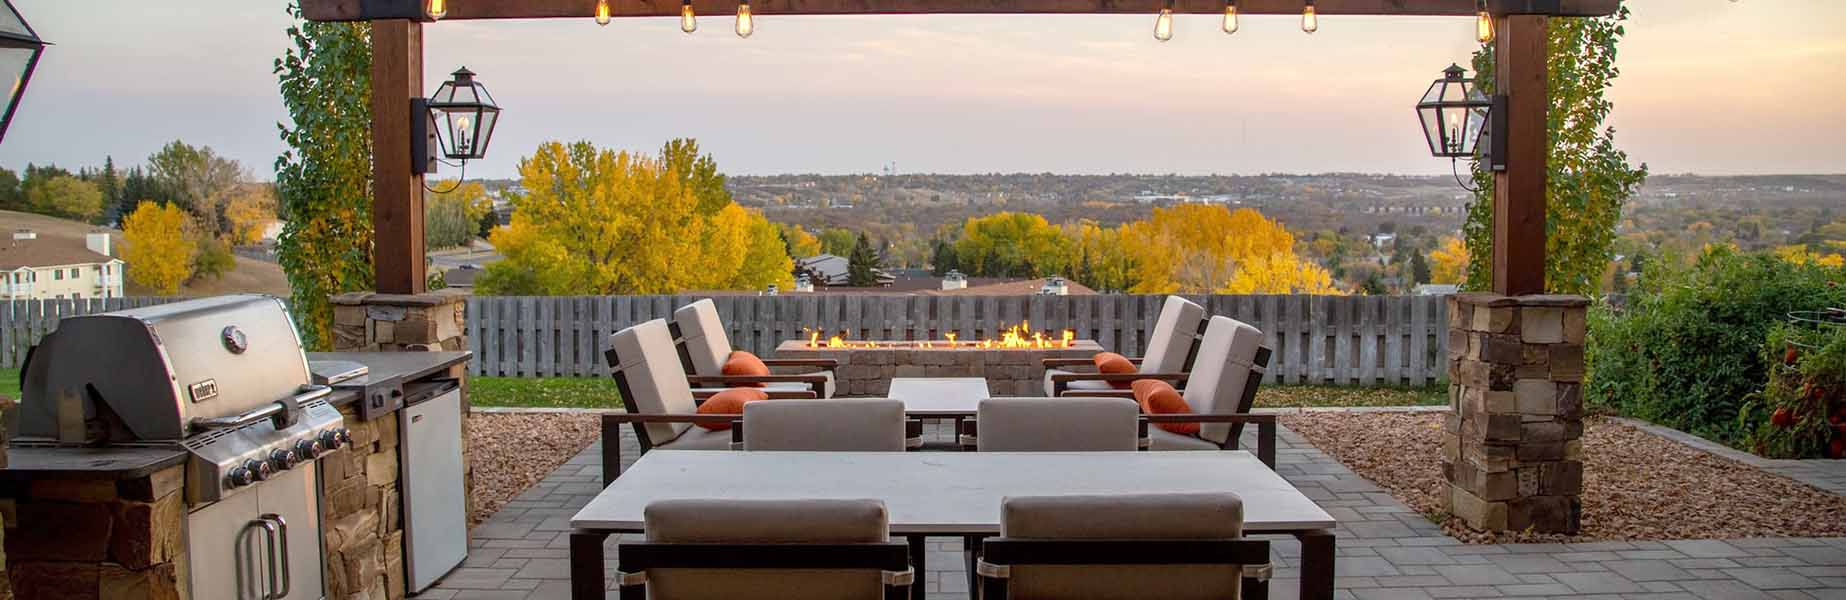 Outdoor Living Space with BBQ Grill Firepit and table